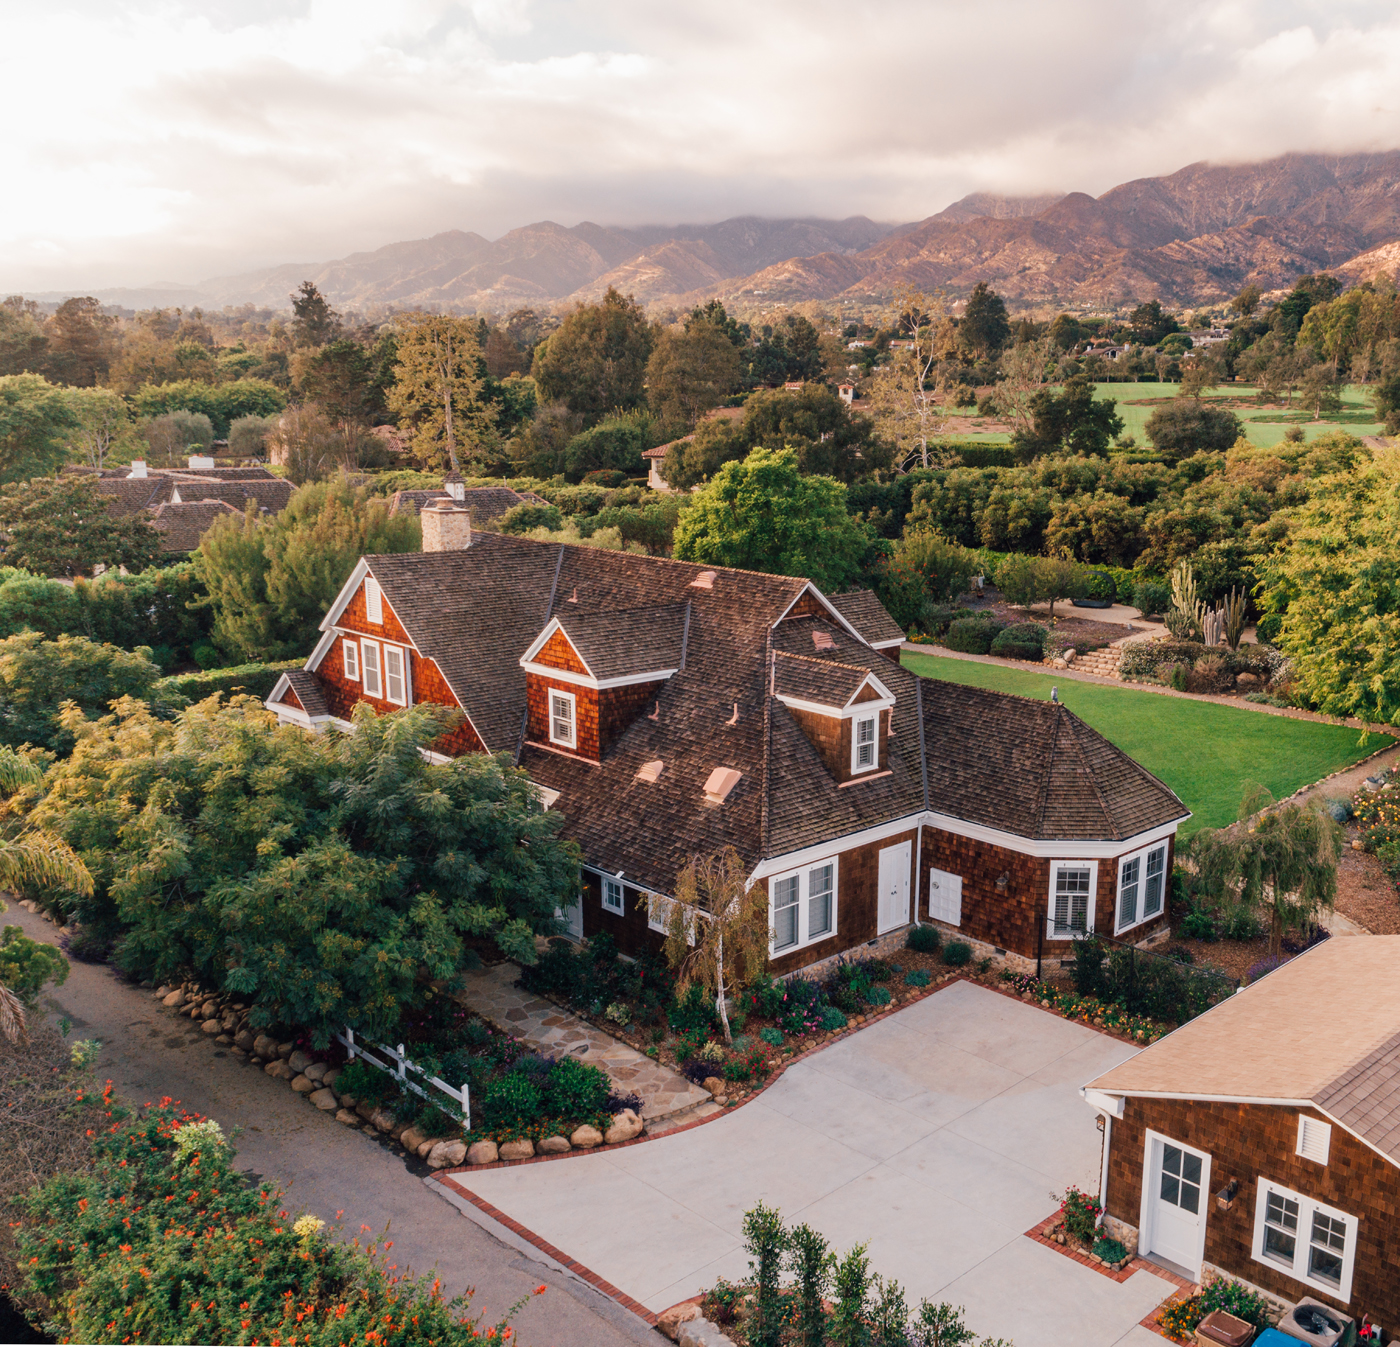 256 Santa Rosa Lane | Curb Appeal